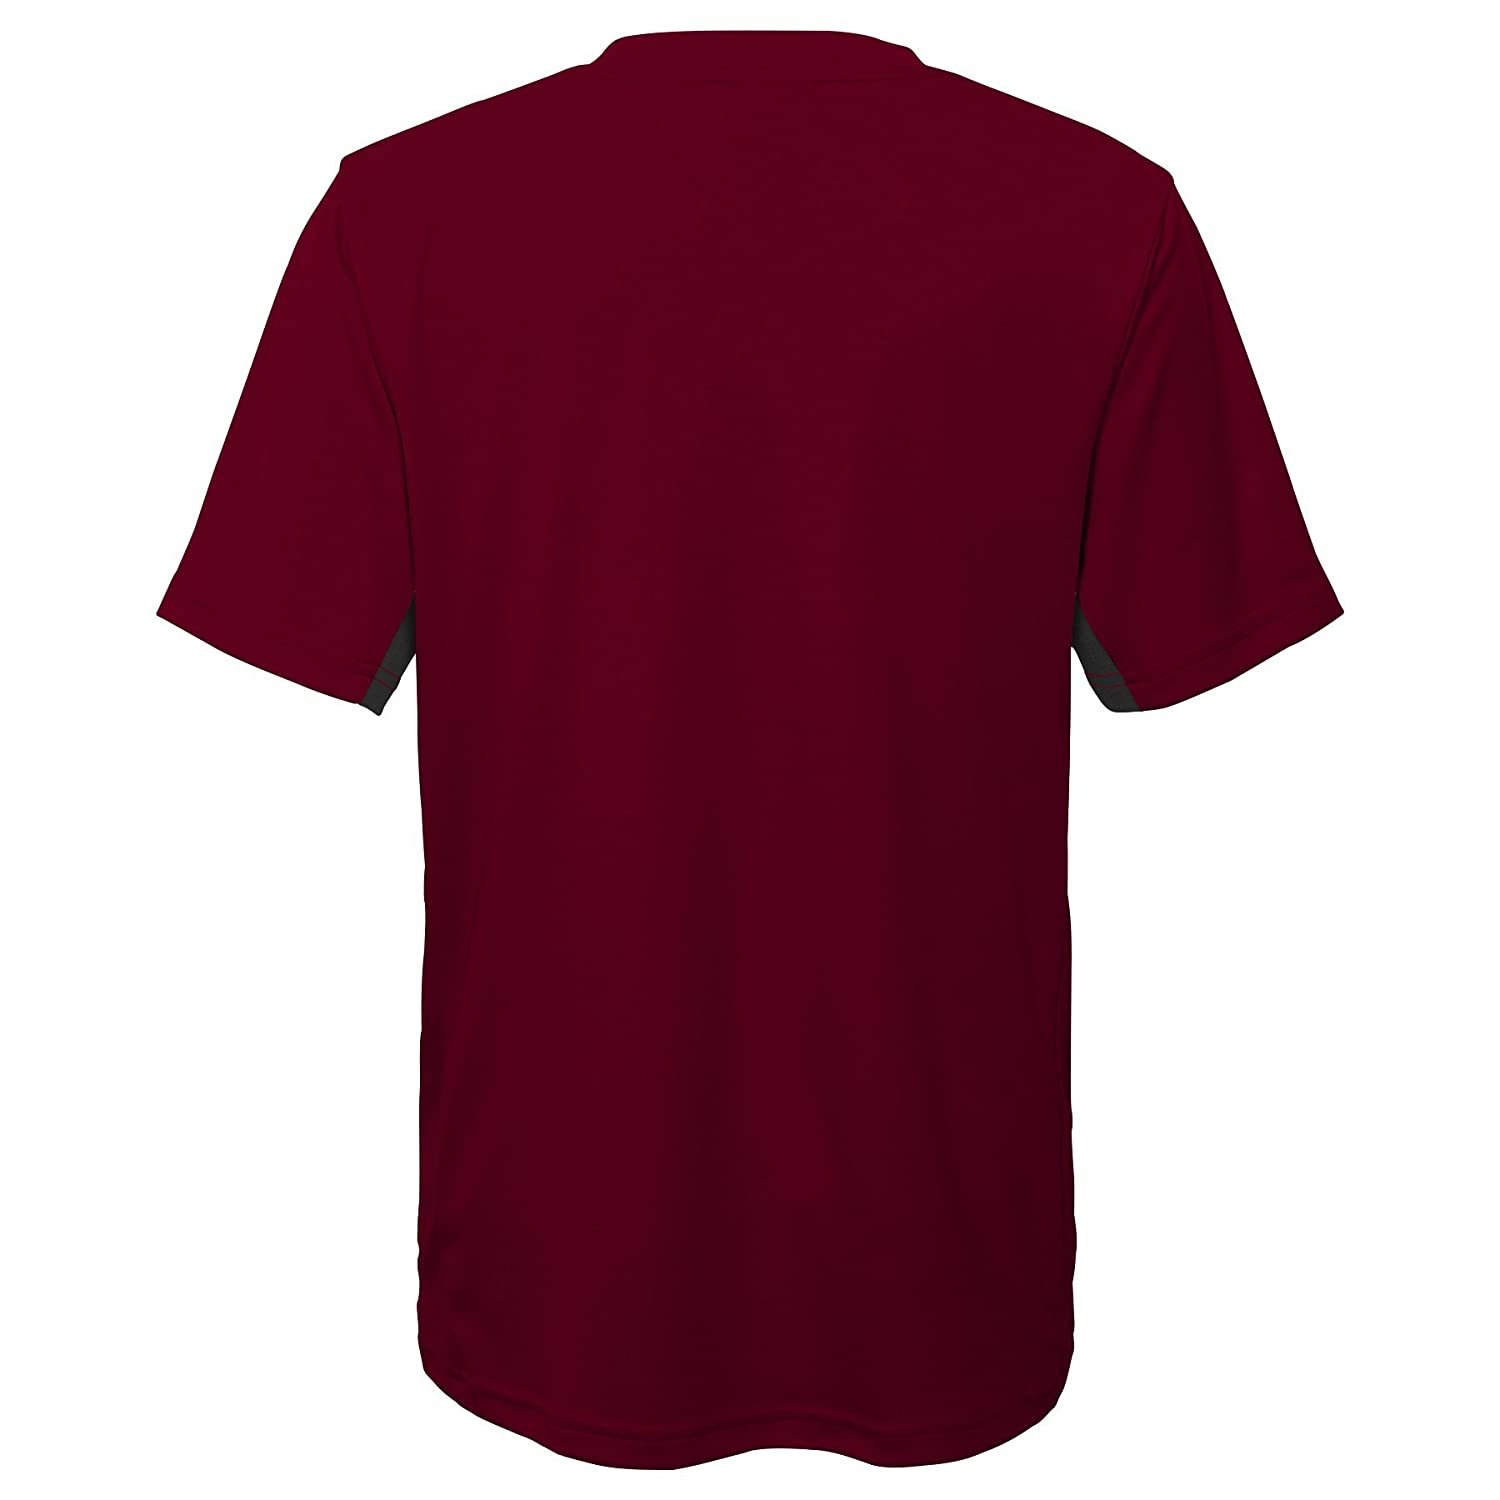 Maroon 14-16 NCAA by Outerstuff NCAA Harvard Crimson Youth Boys Mainframe: Short Sleeve Performance Top Youth Large